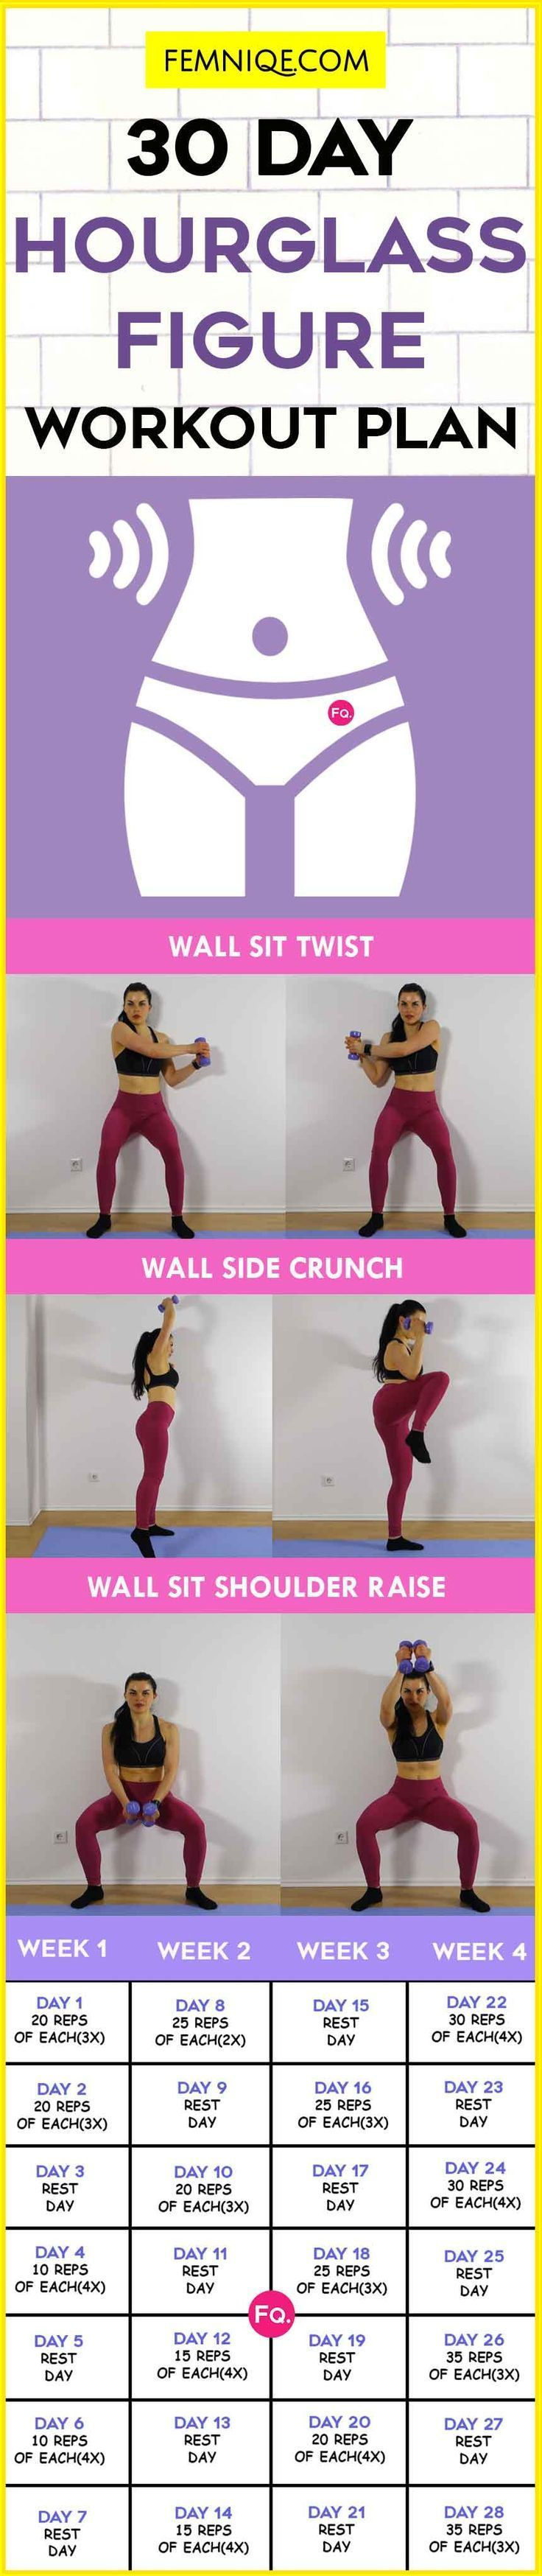 30 Day Hourglass Figure Anti Aging Workout Plan